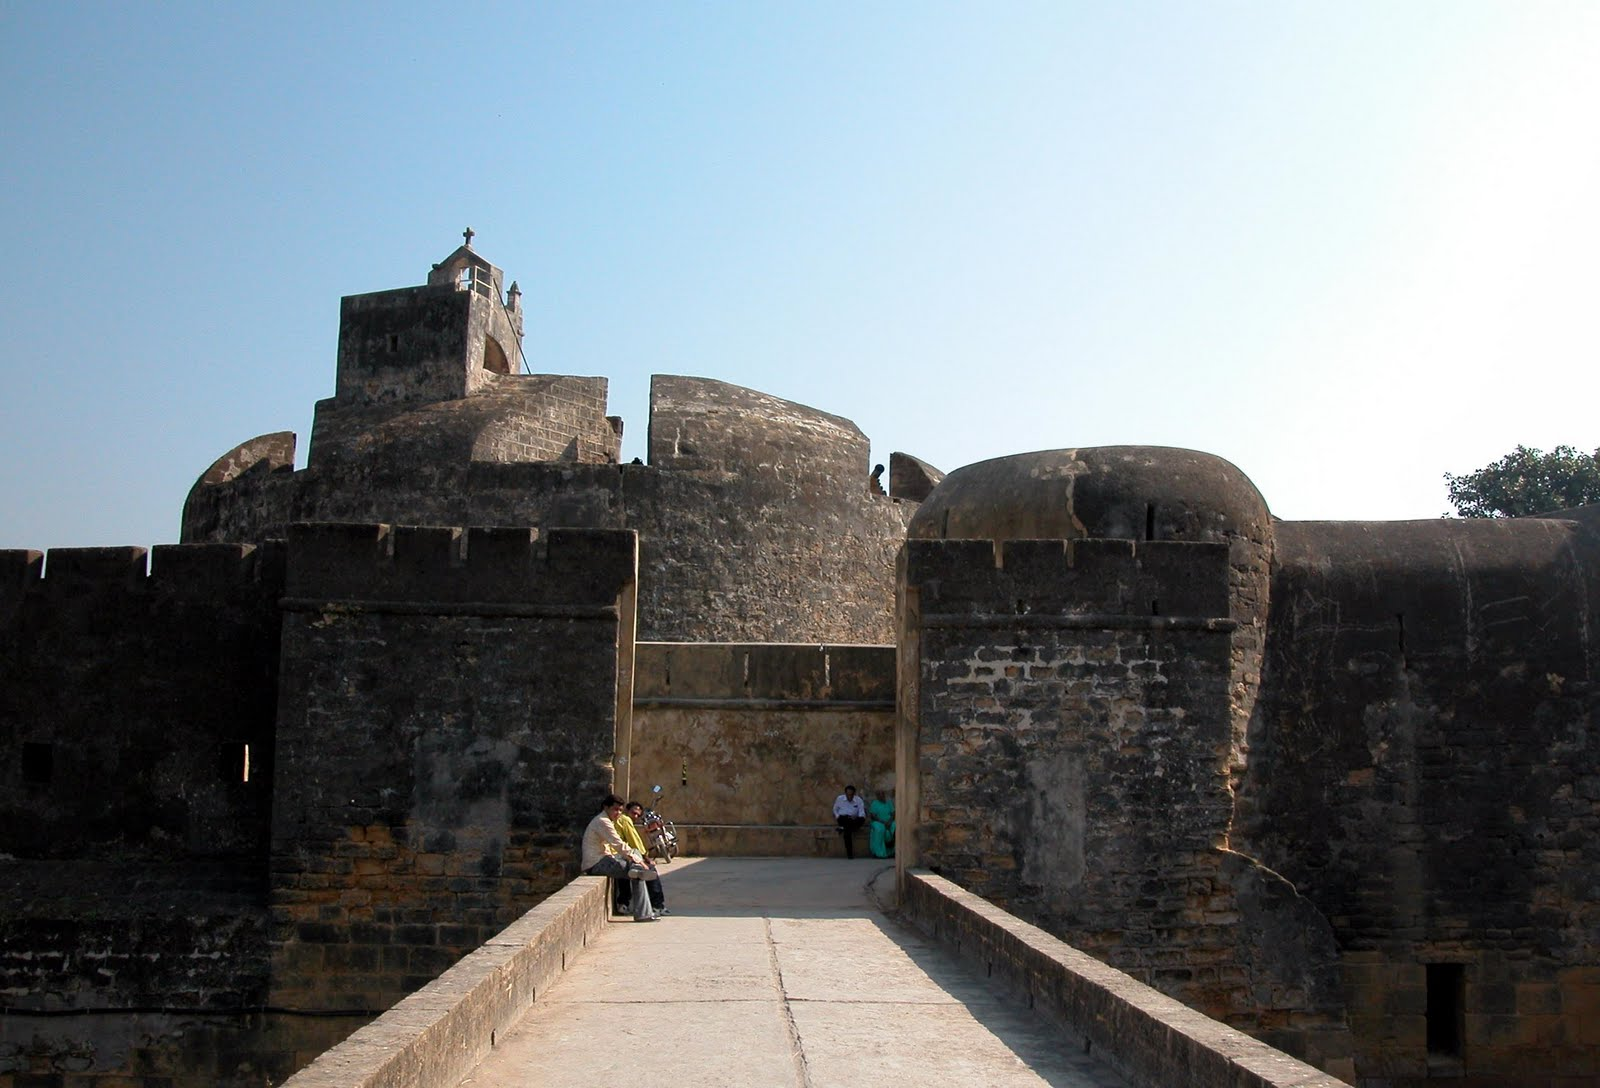 Diu India  city photos gallery : Annette's Travels: TRAVEL THE WORLD DIU, INDIA